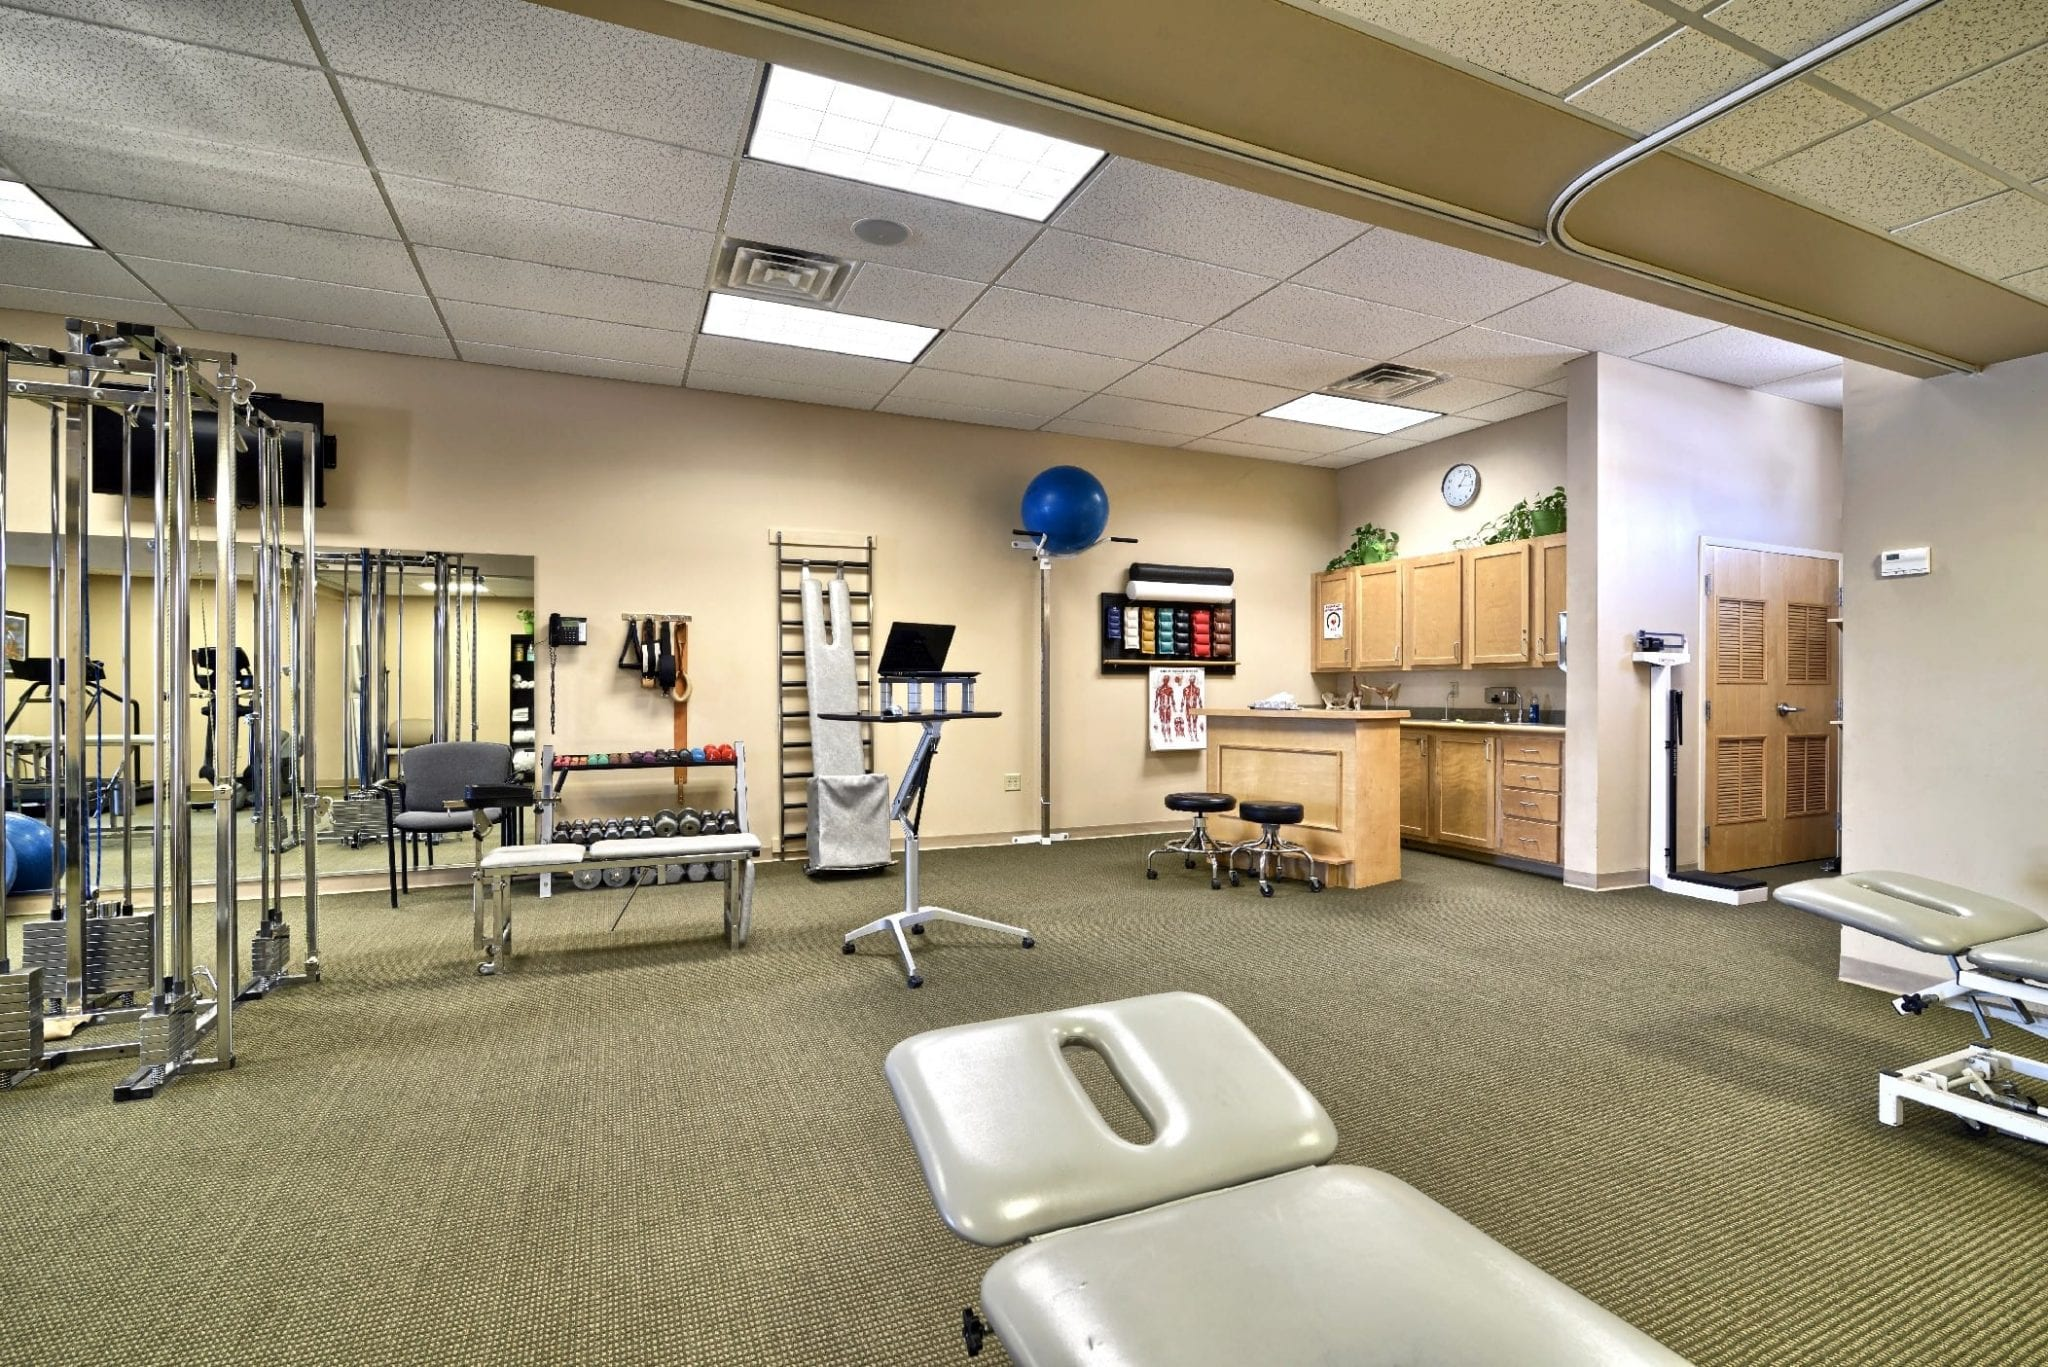 An image of stretch beds, bands, and other equipment at our physical therapy clinic in Epping, New Hampshire.